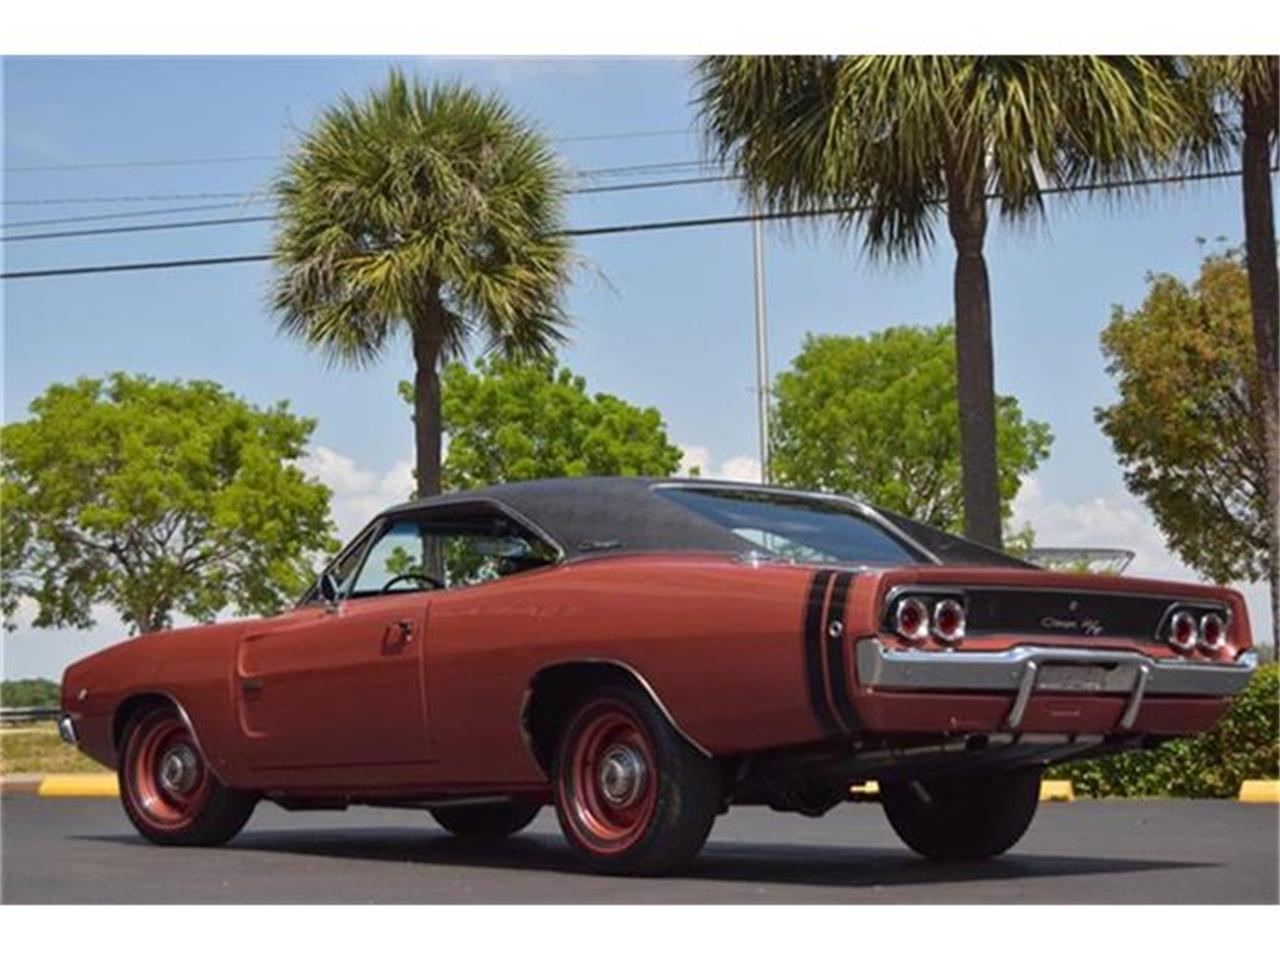 Large Picture of Classic '68 Dodge Charger R/T located in Miami Florida - $134,900.00 - F3VL